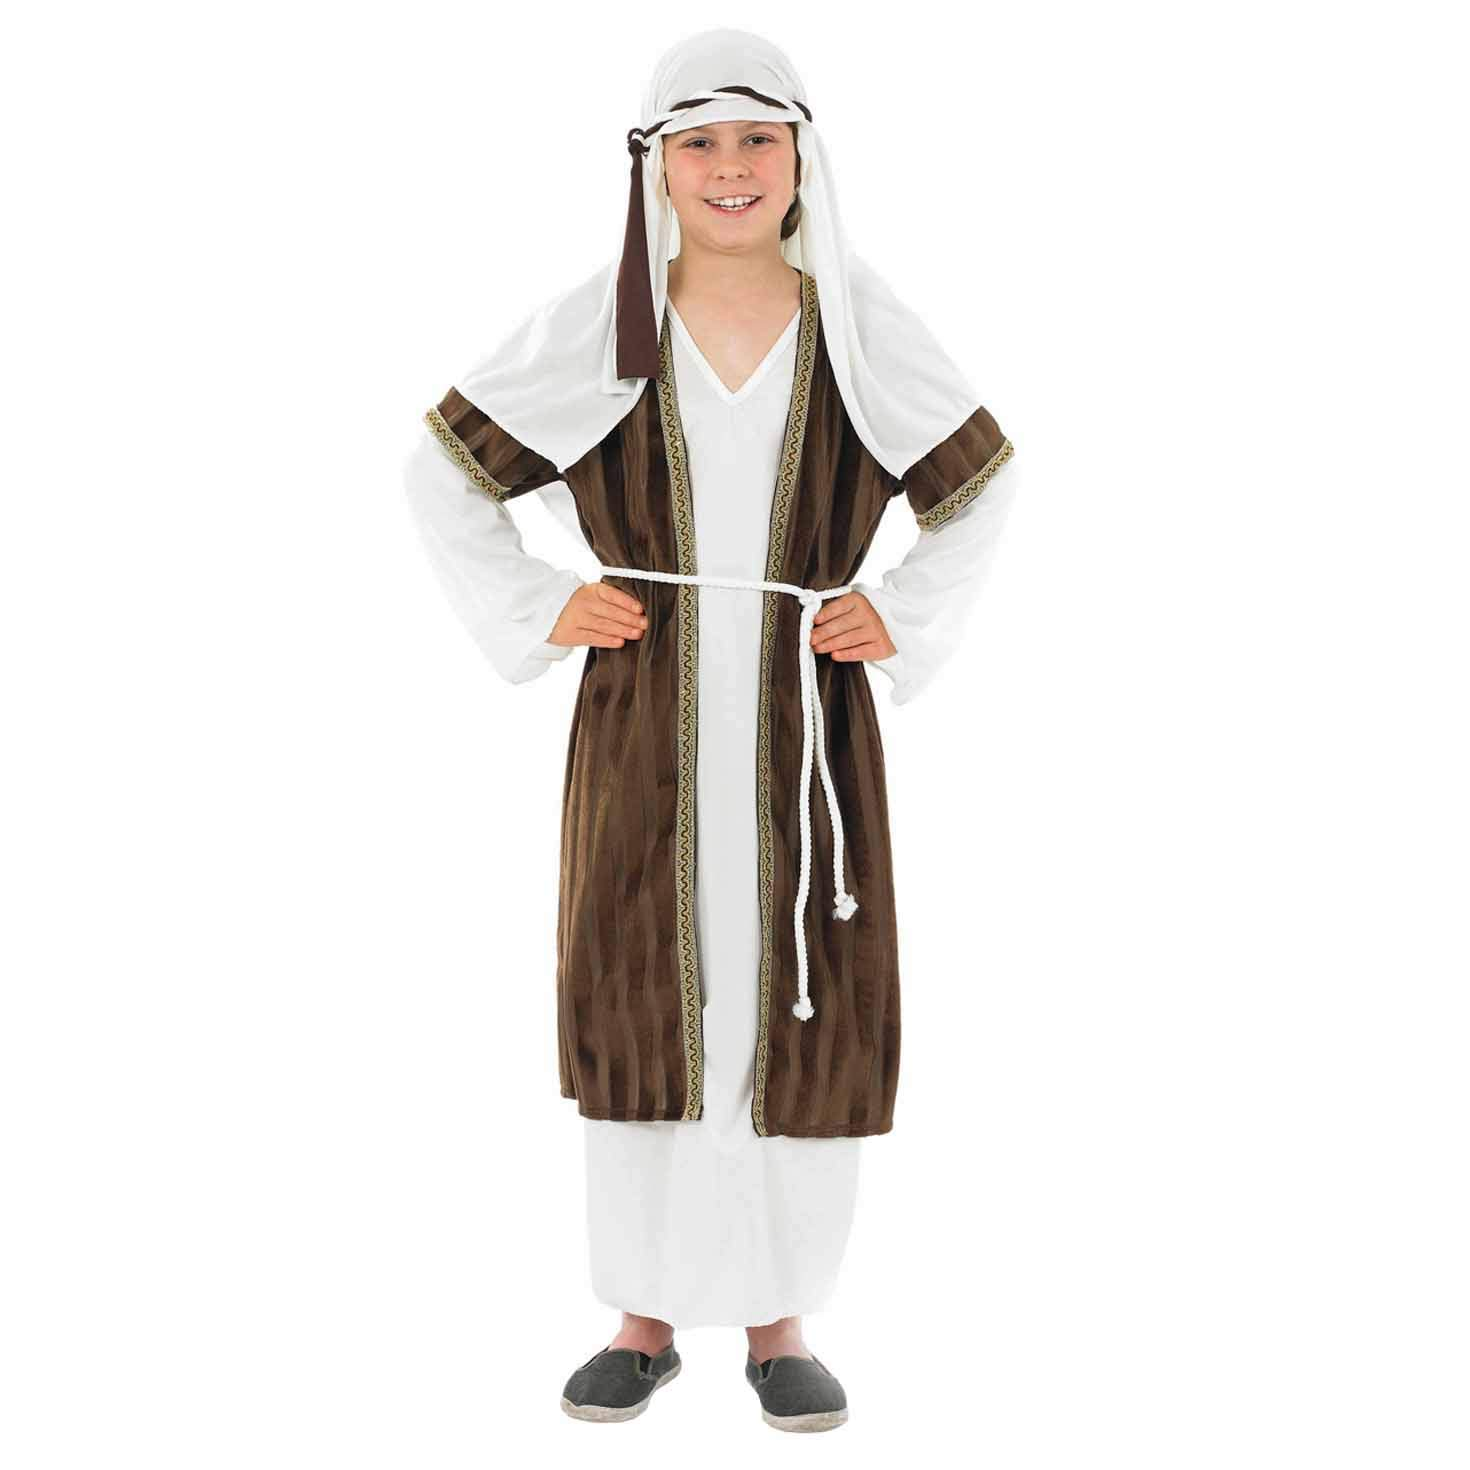 fun shack Kids Brown Shepherd Costume Boys & Girls Christmas Nativity Robe Outfits - Large by fun shack